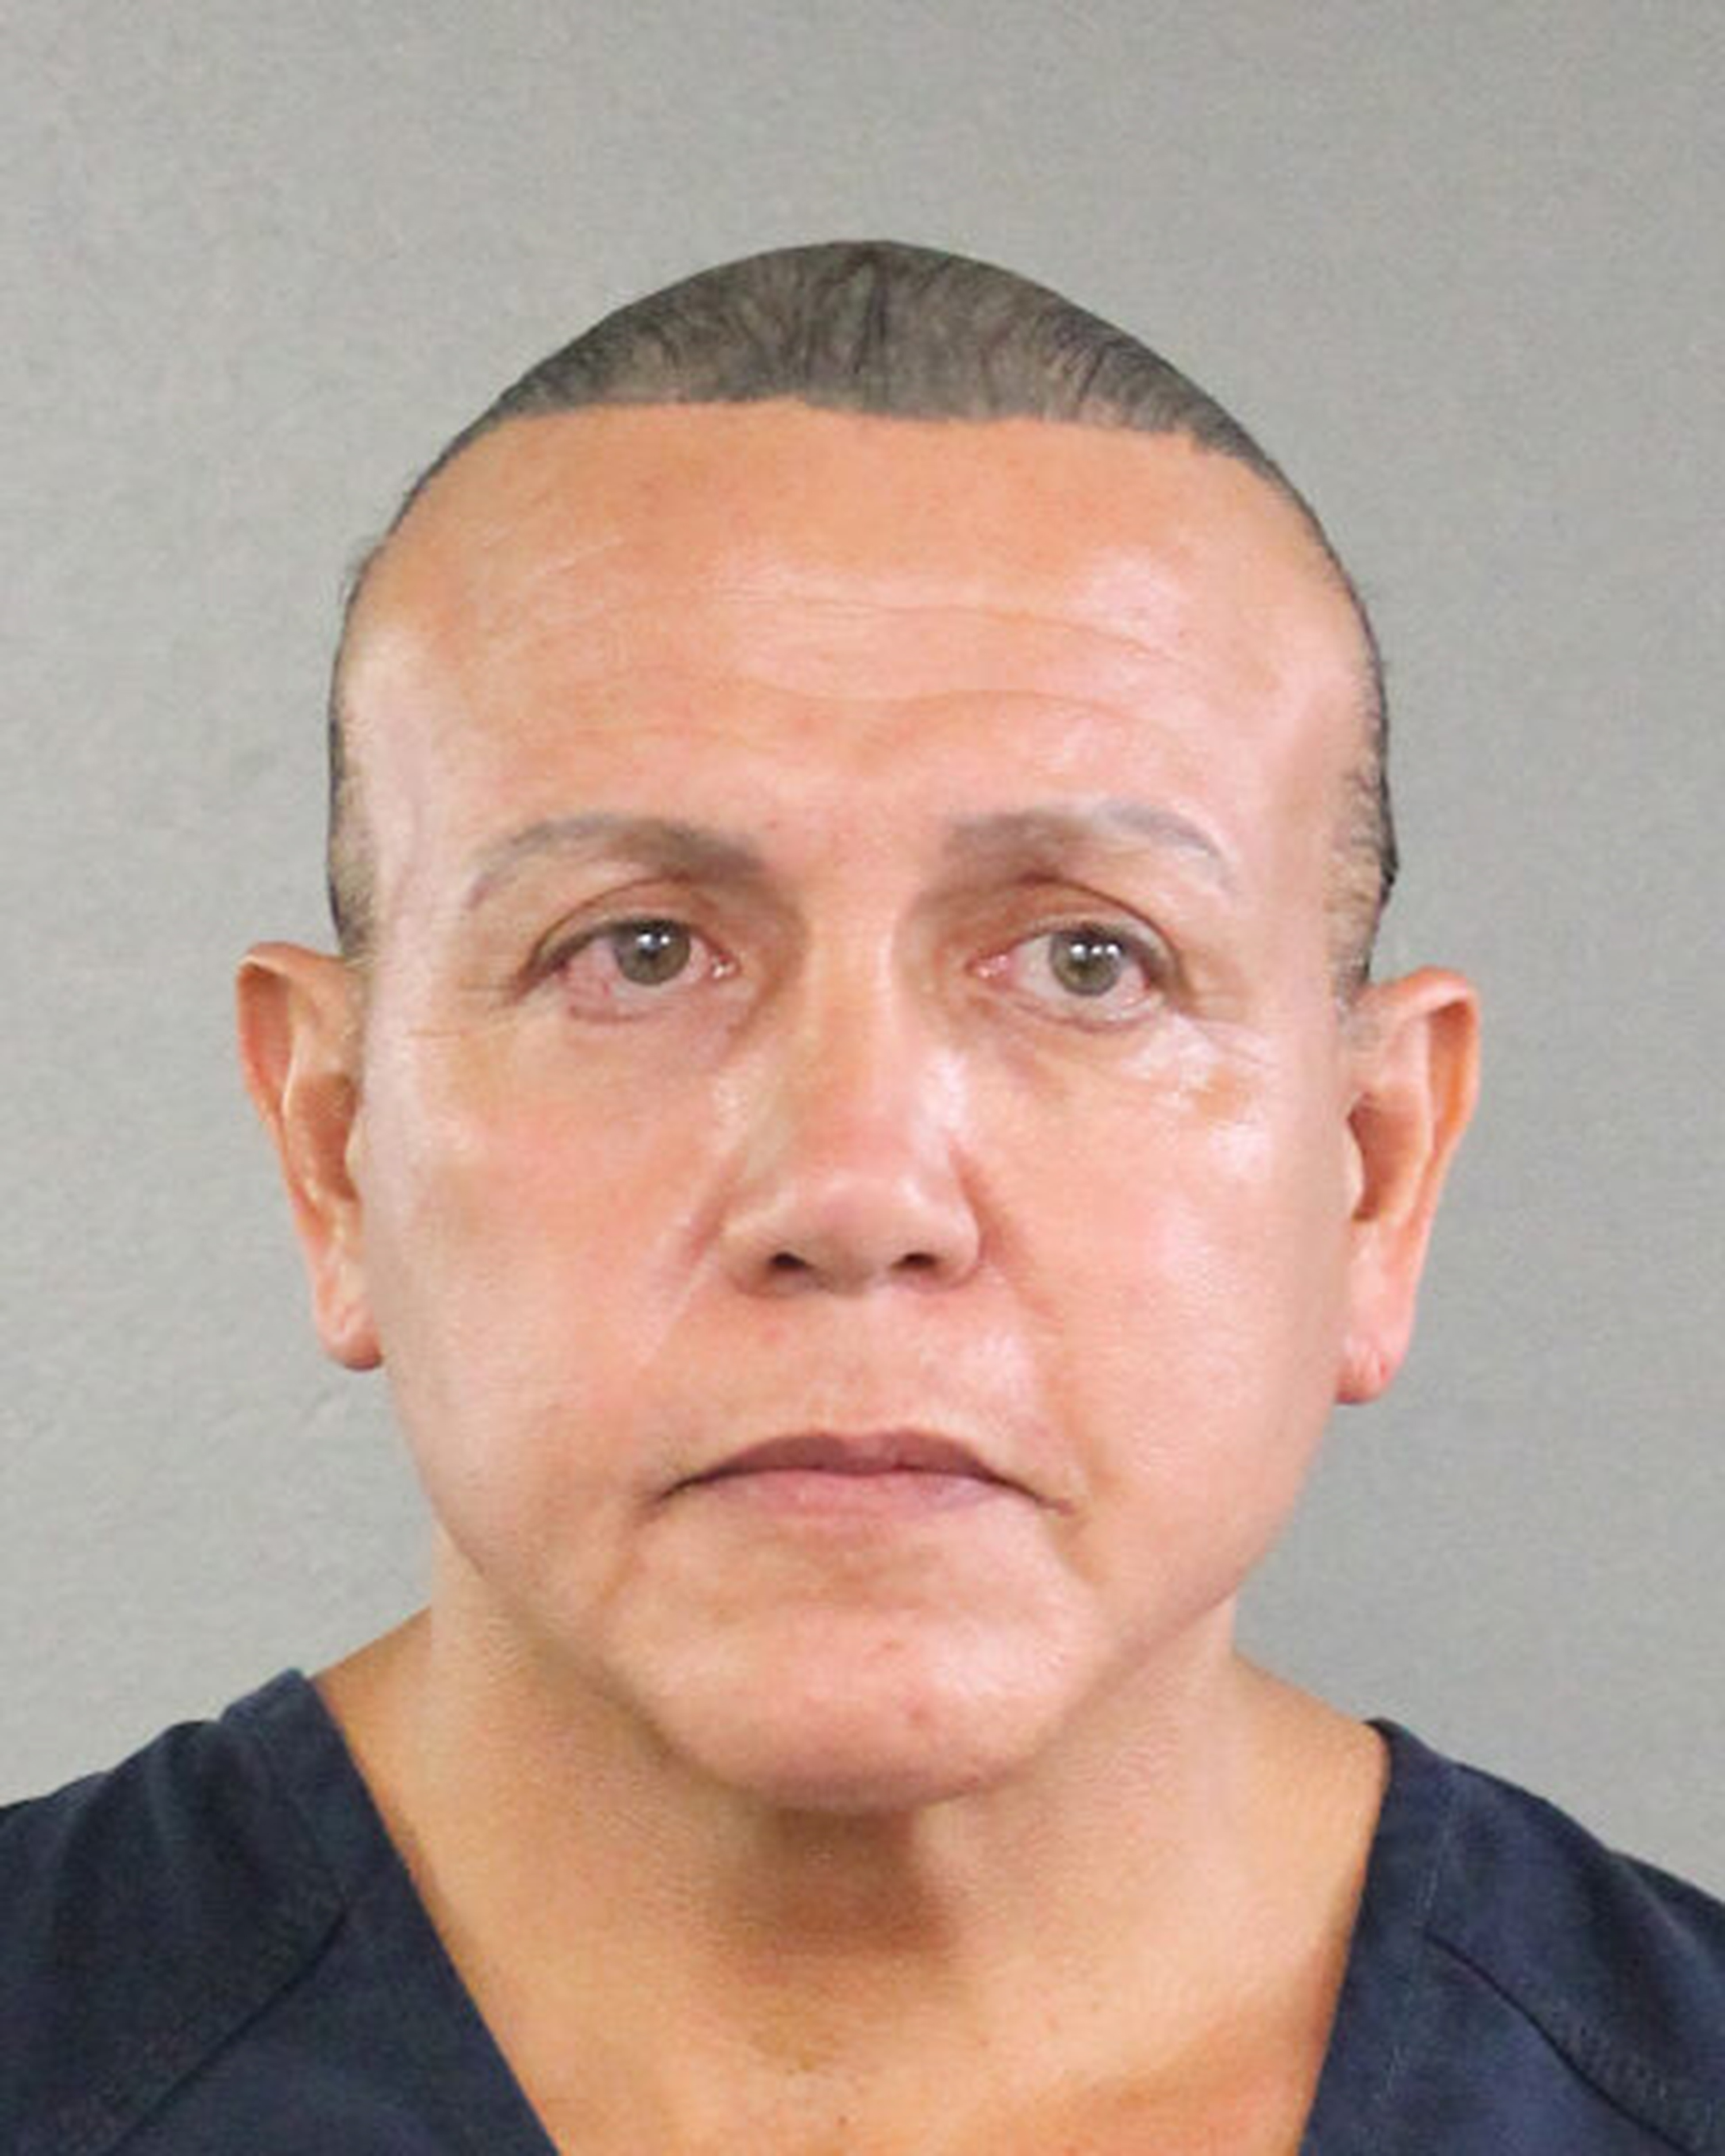 In this undated handout provided by the Broward County Sheriff's Office, Cesar Sayoc poses for a mugshot photo in Miami, Florida.